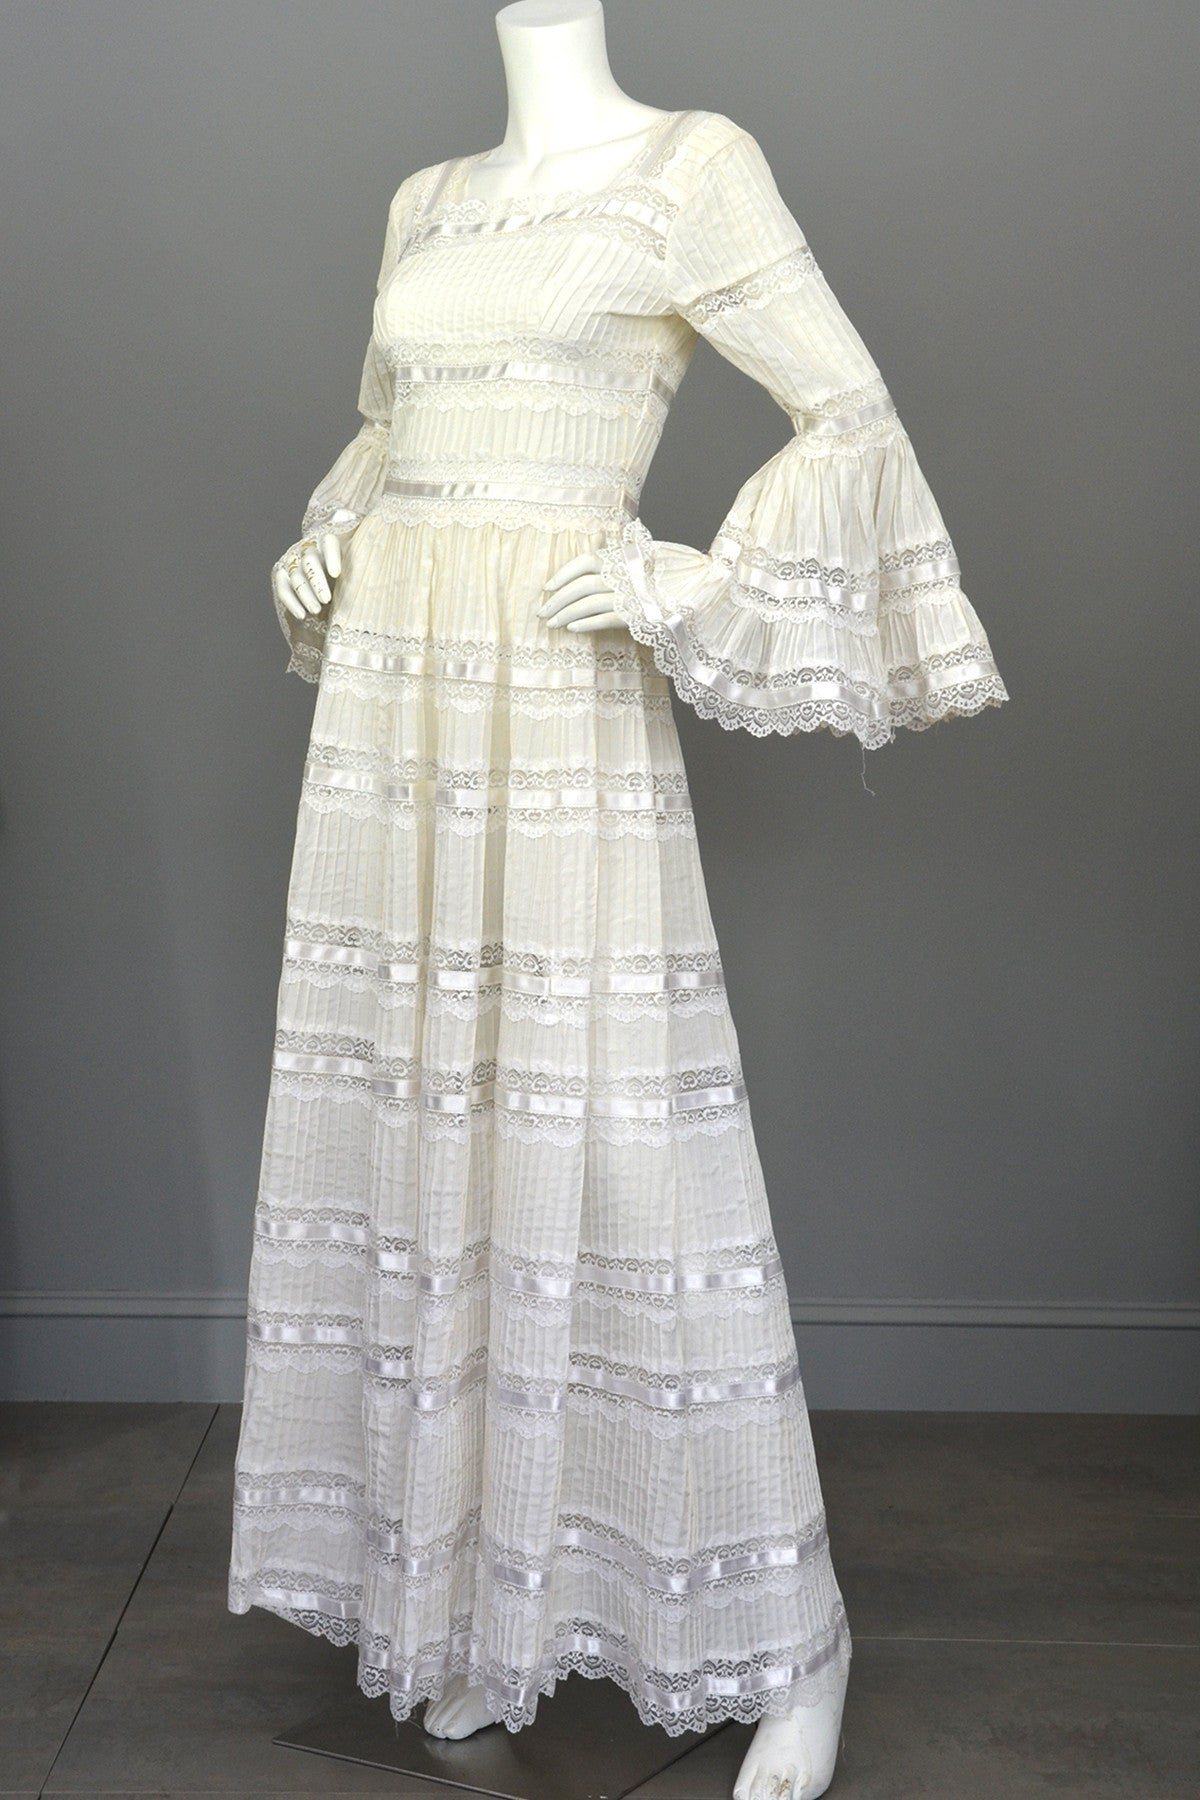 1970s Vintage Mexican Wedding Dress With Bell Sleeves And Lace: Mexican Wedding Dresses Ivory At Websimilar.org